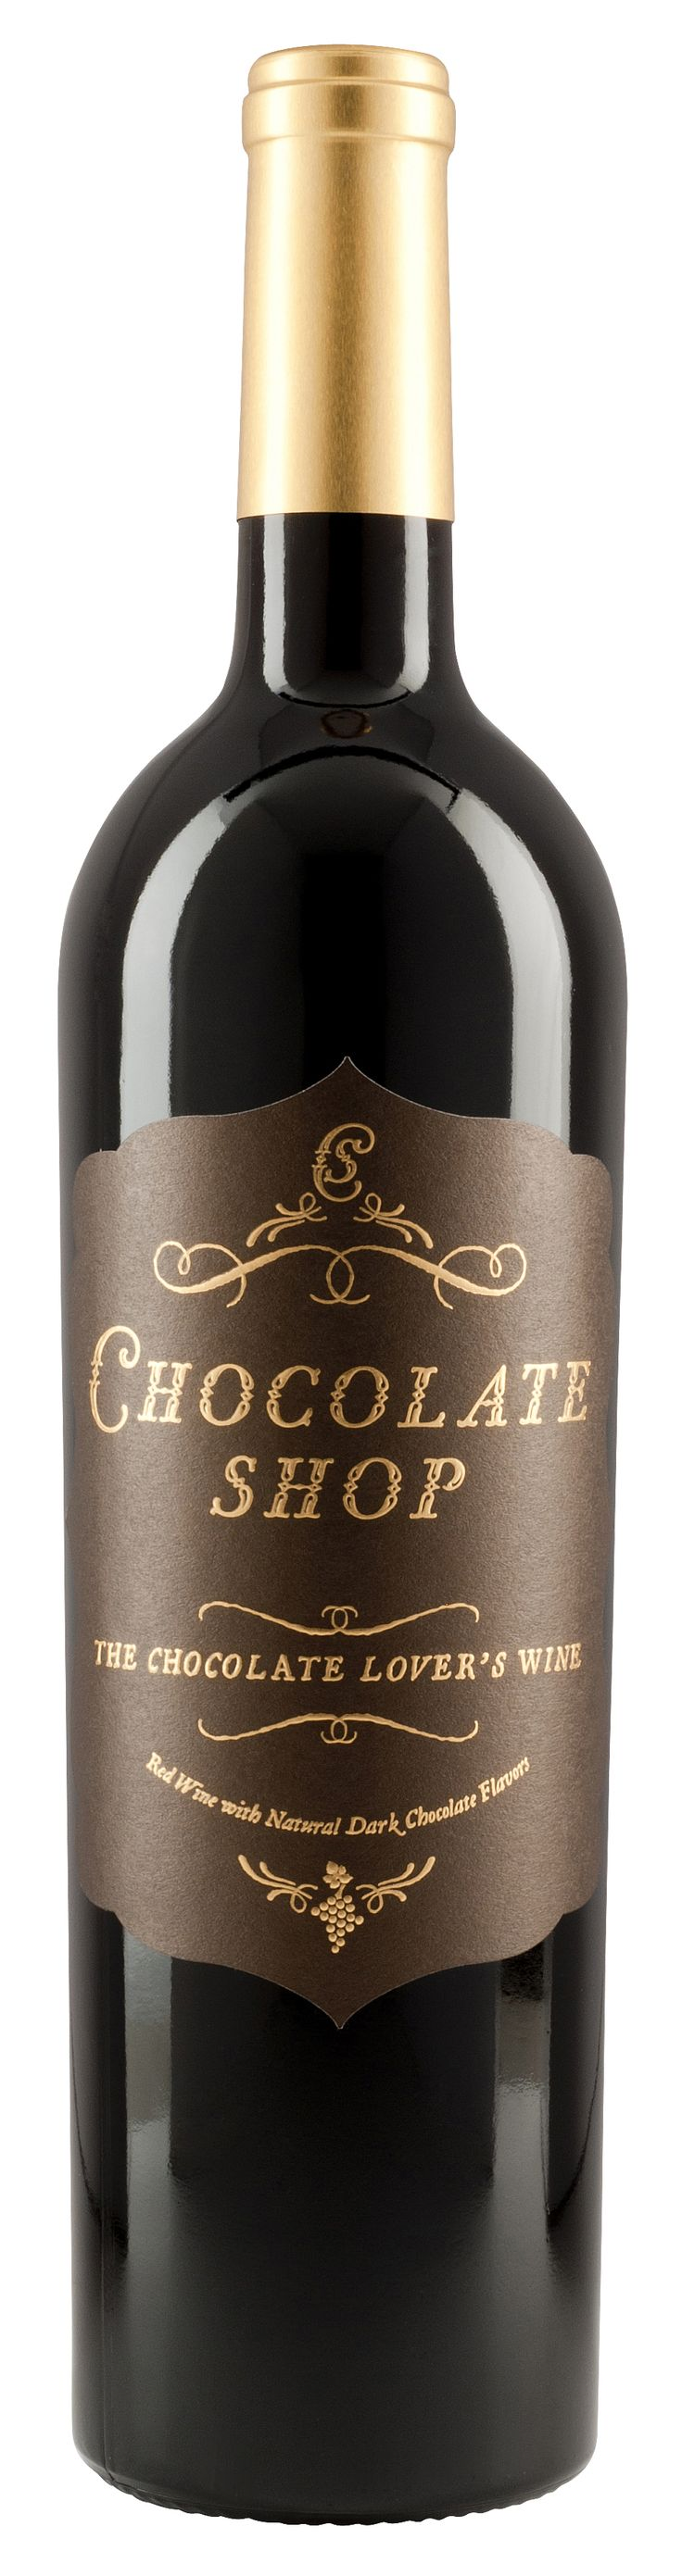 Best 25+ Chocolate shop ideas on Pinterest | Chocolate store ...